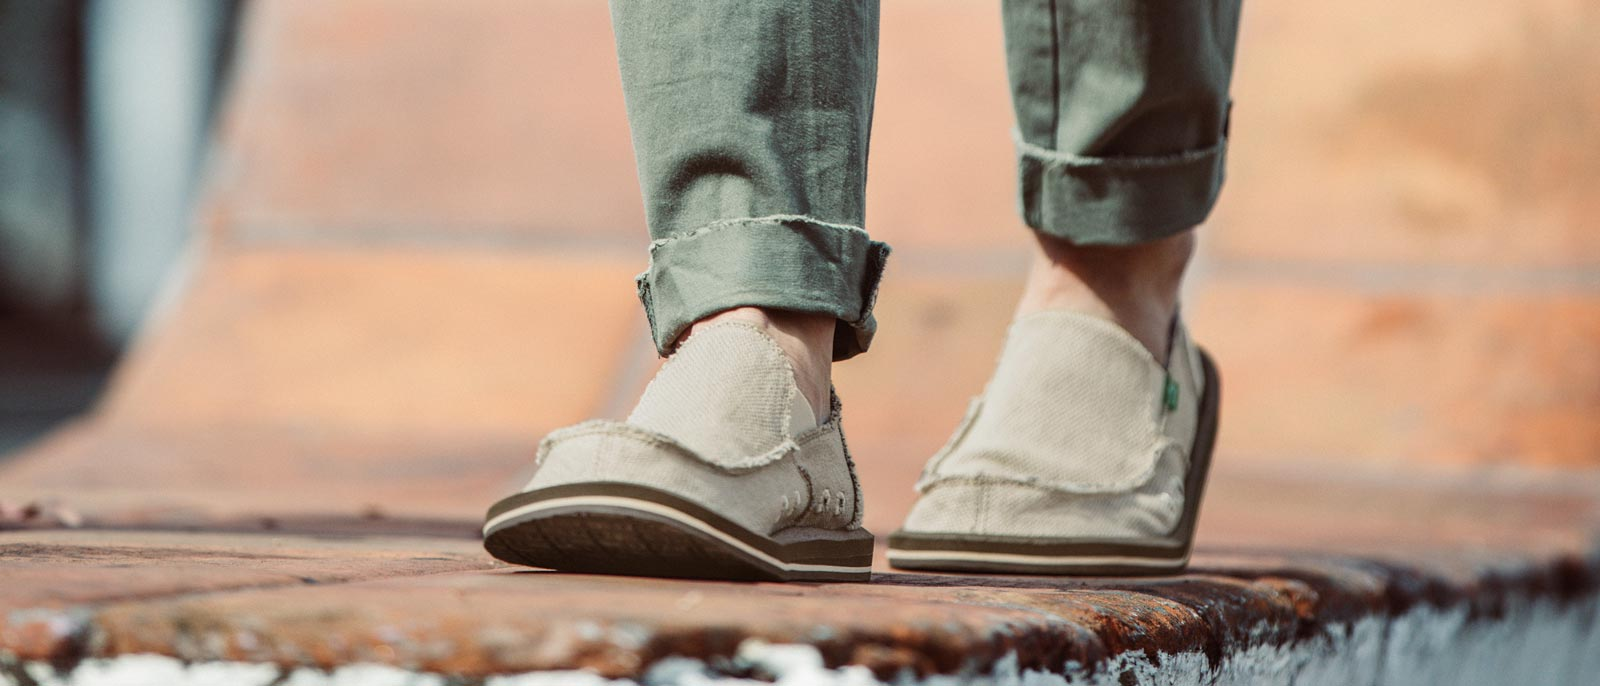 Man walking wearing Sanuks.